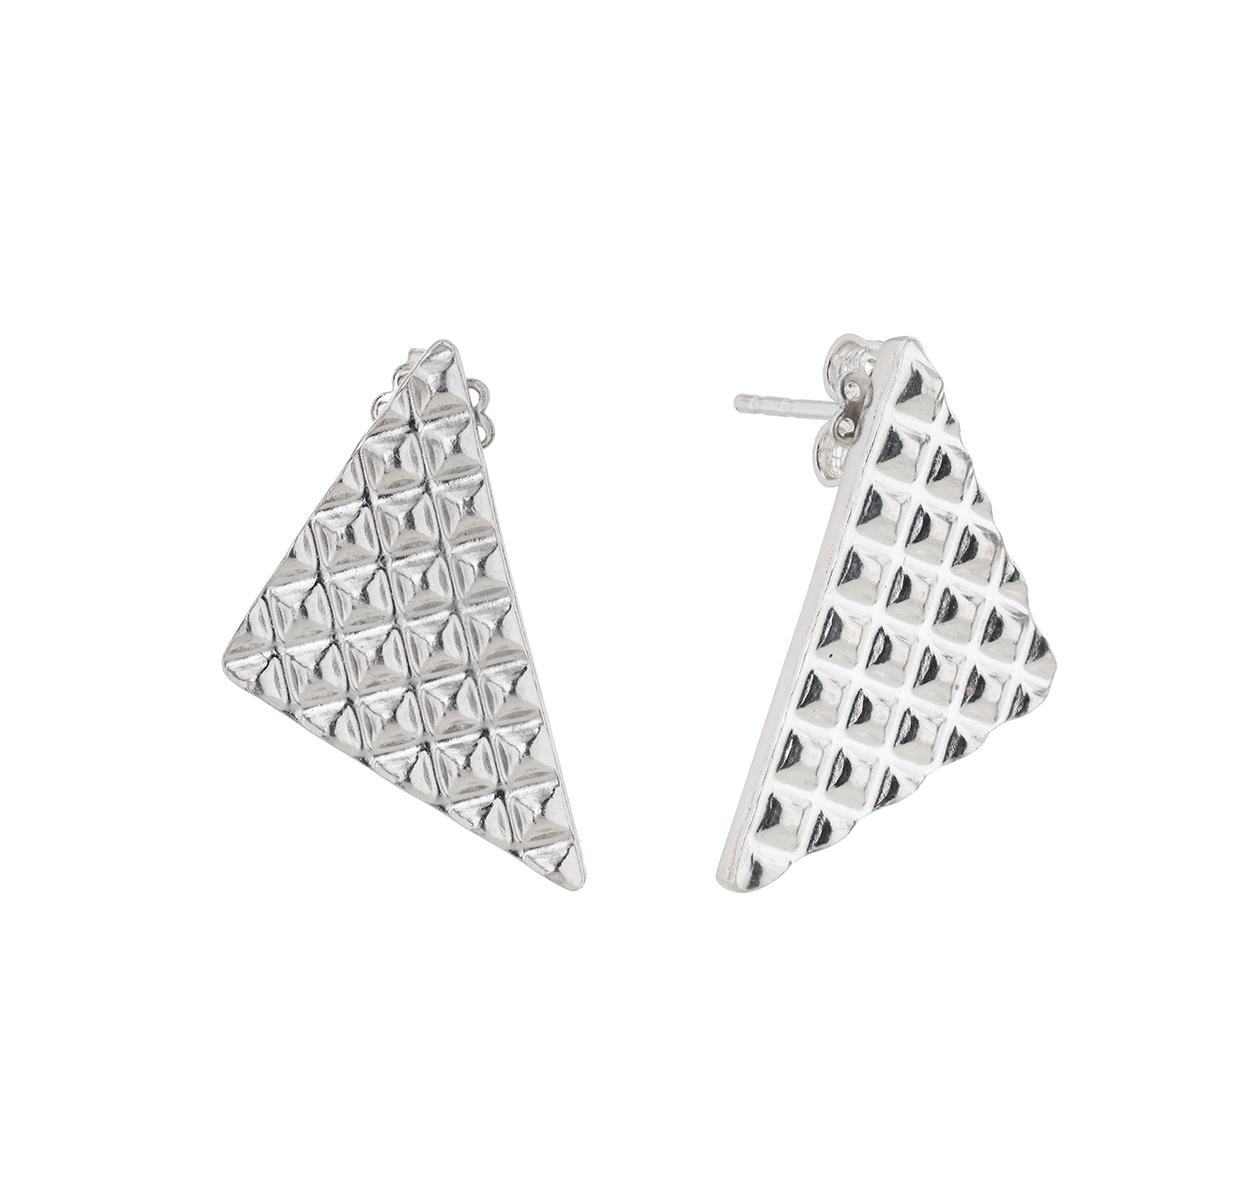 Jewel Lab  Fine Silver    Silver Earrings Urban Jungle Vulcano ((pixel) Triangle Earrings